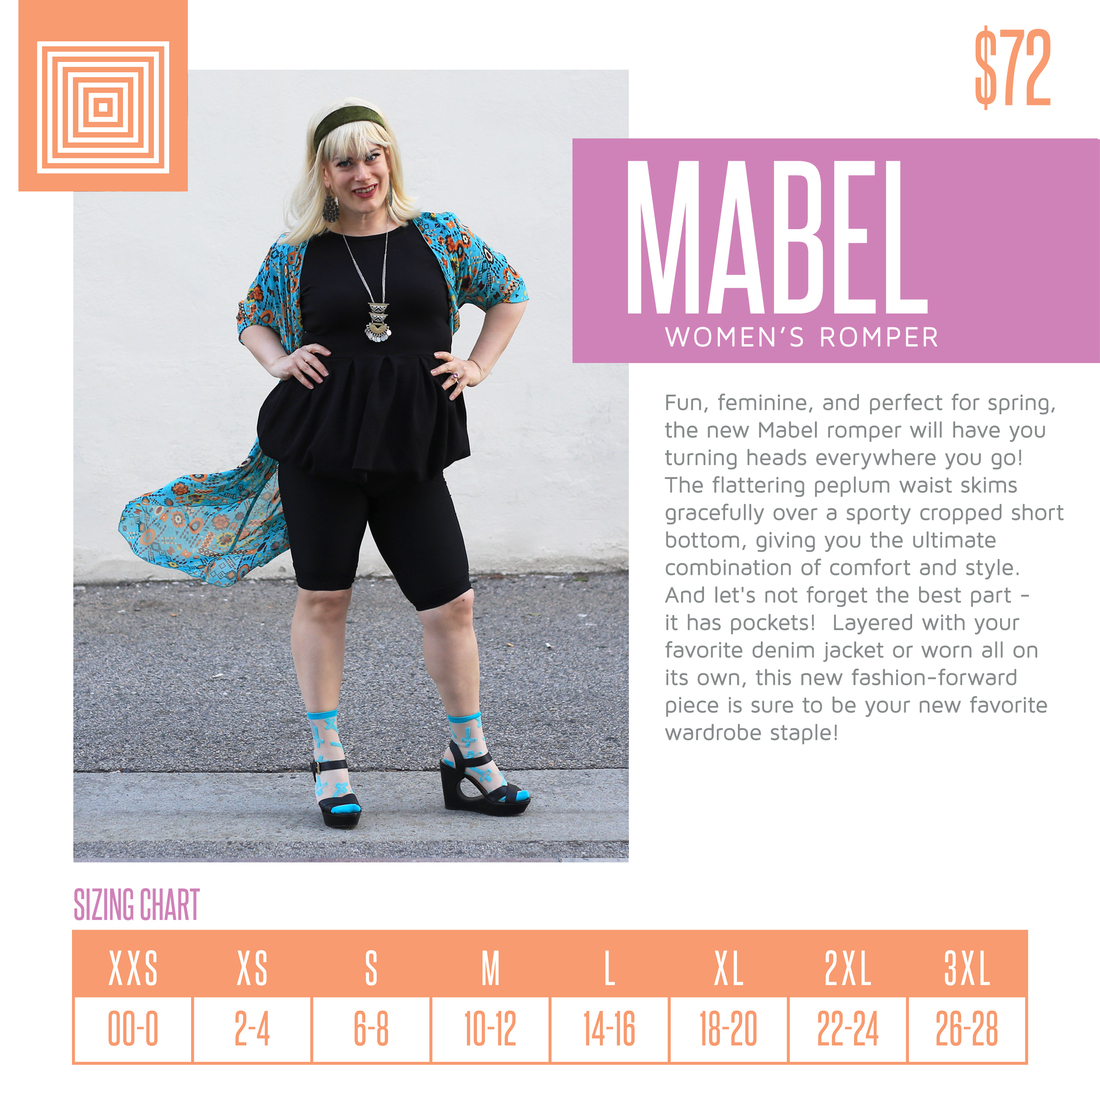 New Style Alert The Lularoe Mabel Romper Direct Sales Party Plan And Network Marketing Companies Member Article By Katrina Hetrick